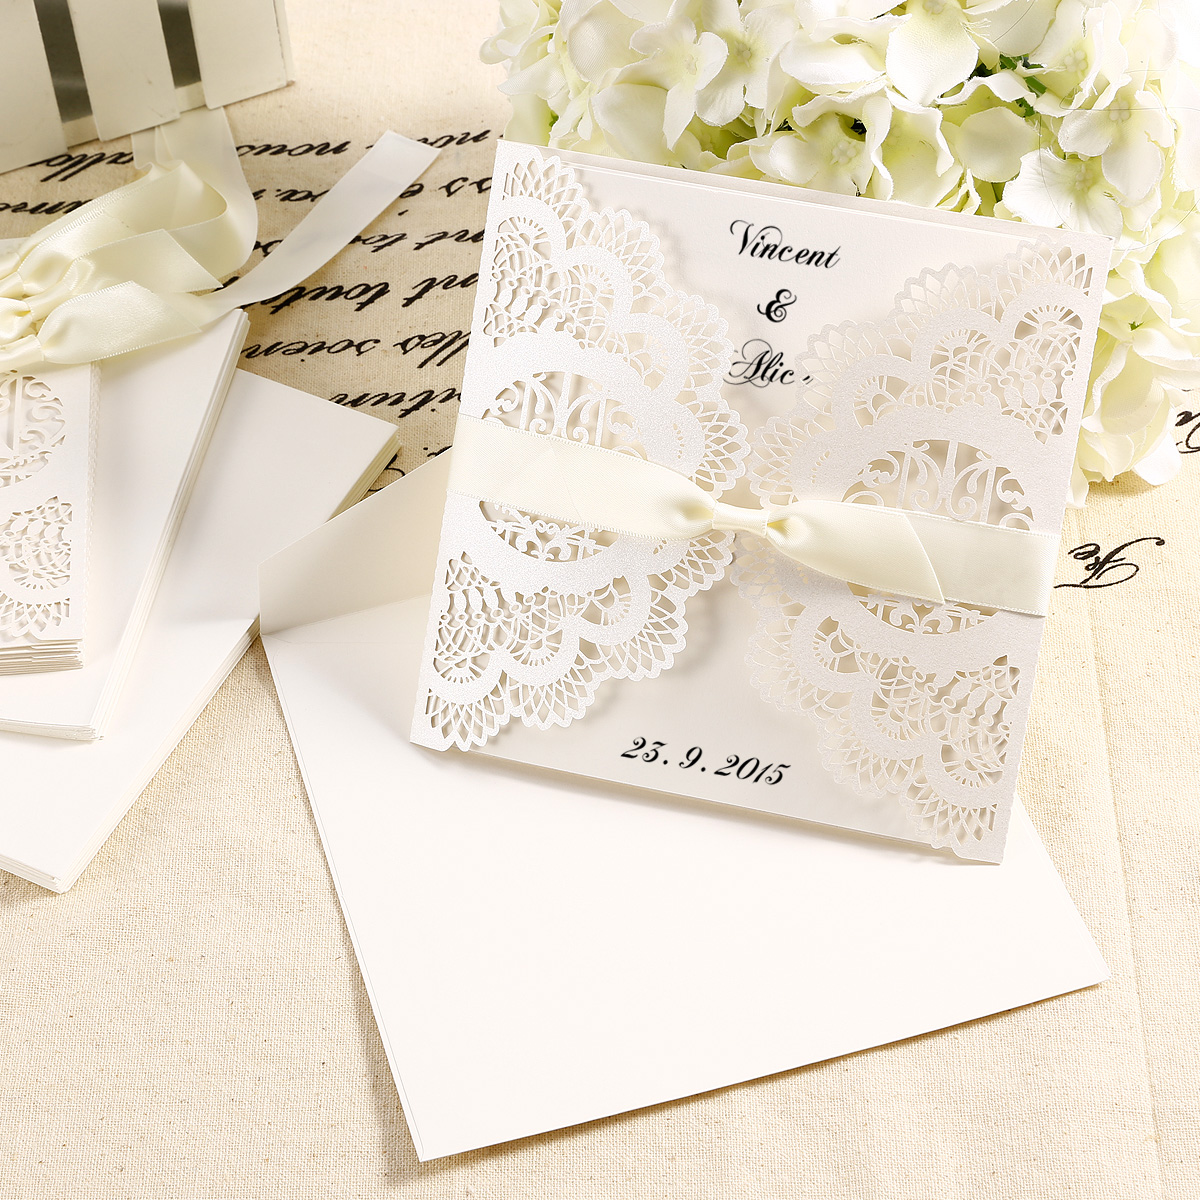 10X DIY Laser Cut Lace Wedding Invitations card & Envelope w/ Ribbon ...